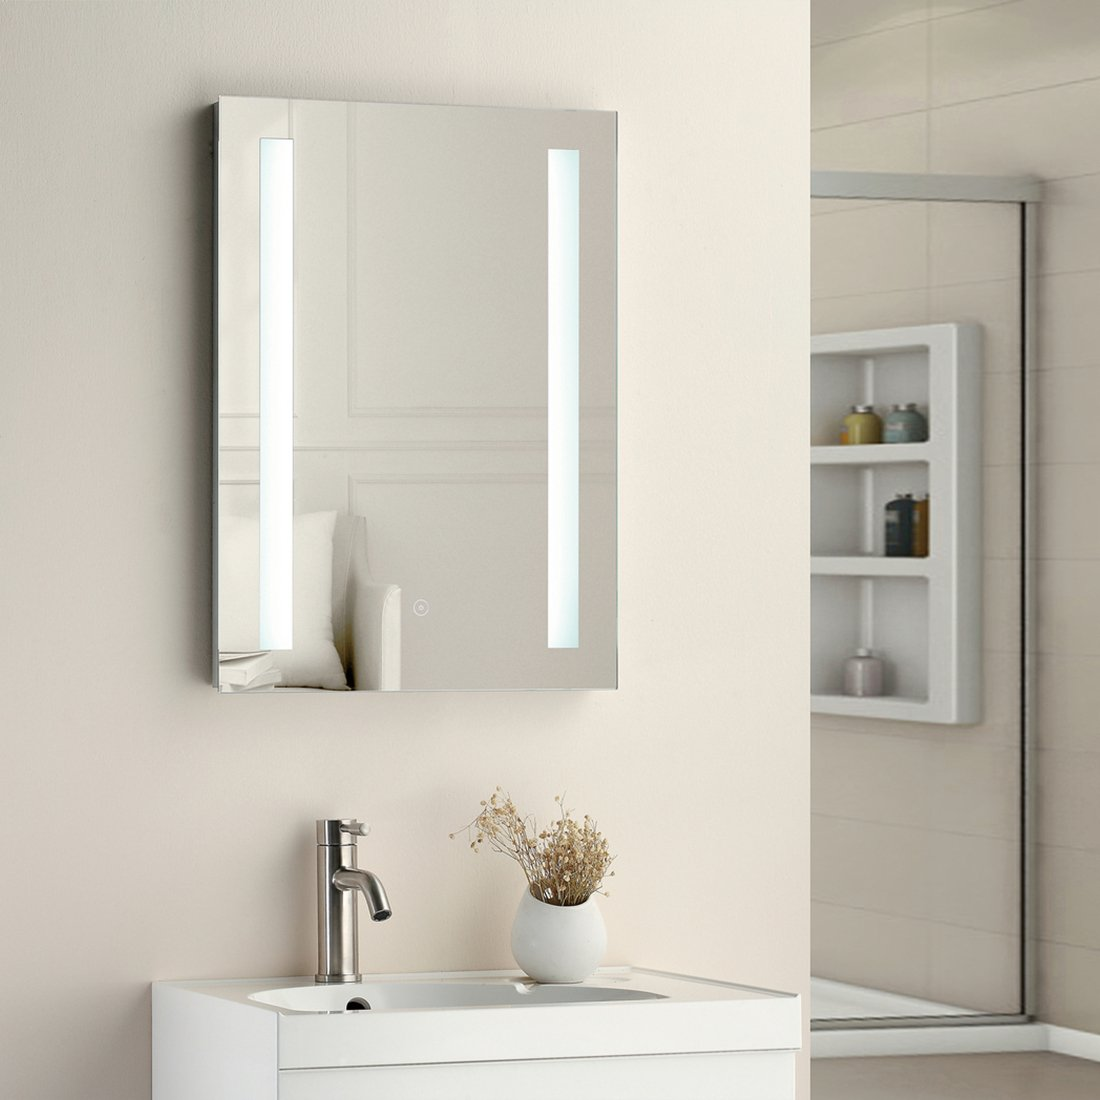 "SUNNY SHOWER 19"" W x 27"" H Backlit Led Bathroom Vanity Sink Silvered 4mm Mirror with Touch Button"